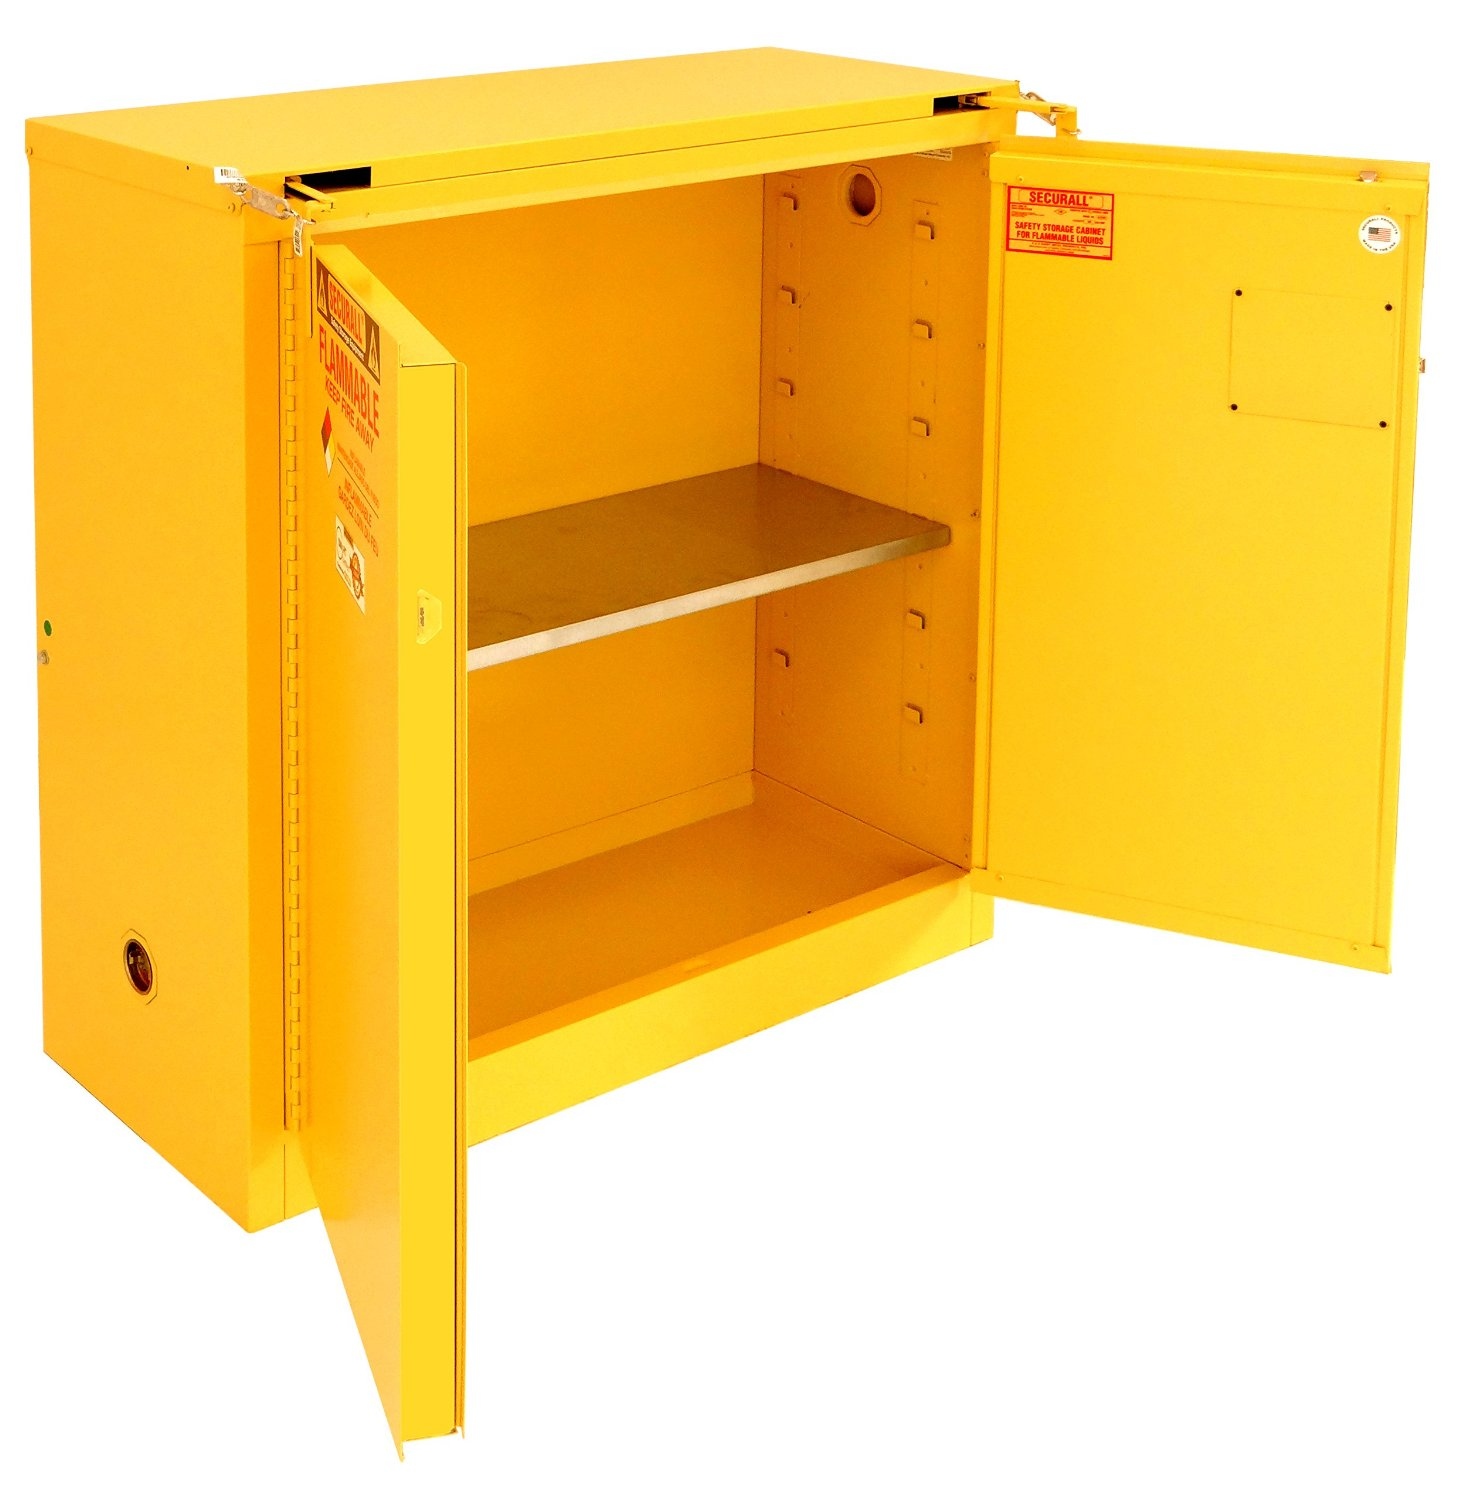 Cheap Fire Cabinets Flammable Liquids Find Fire Cabinets